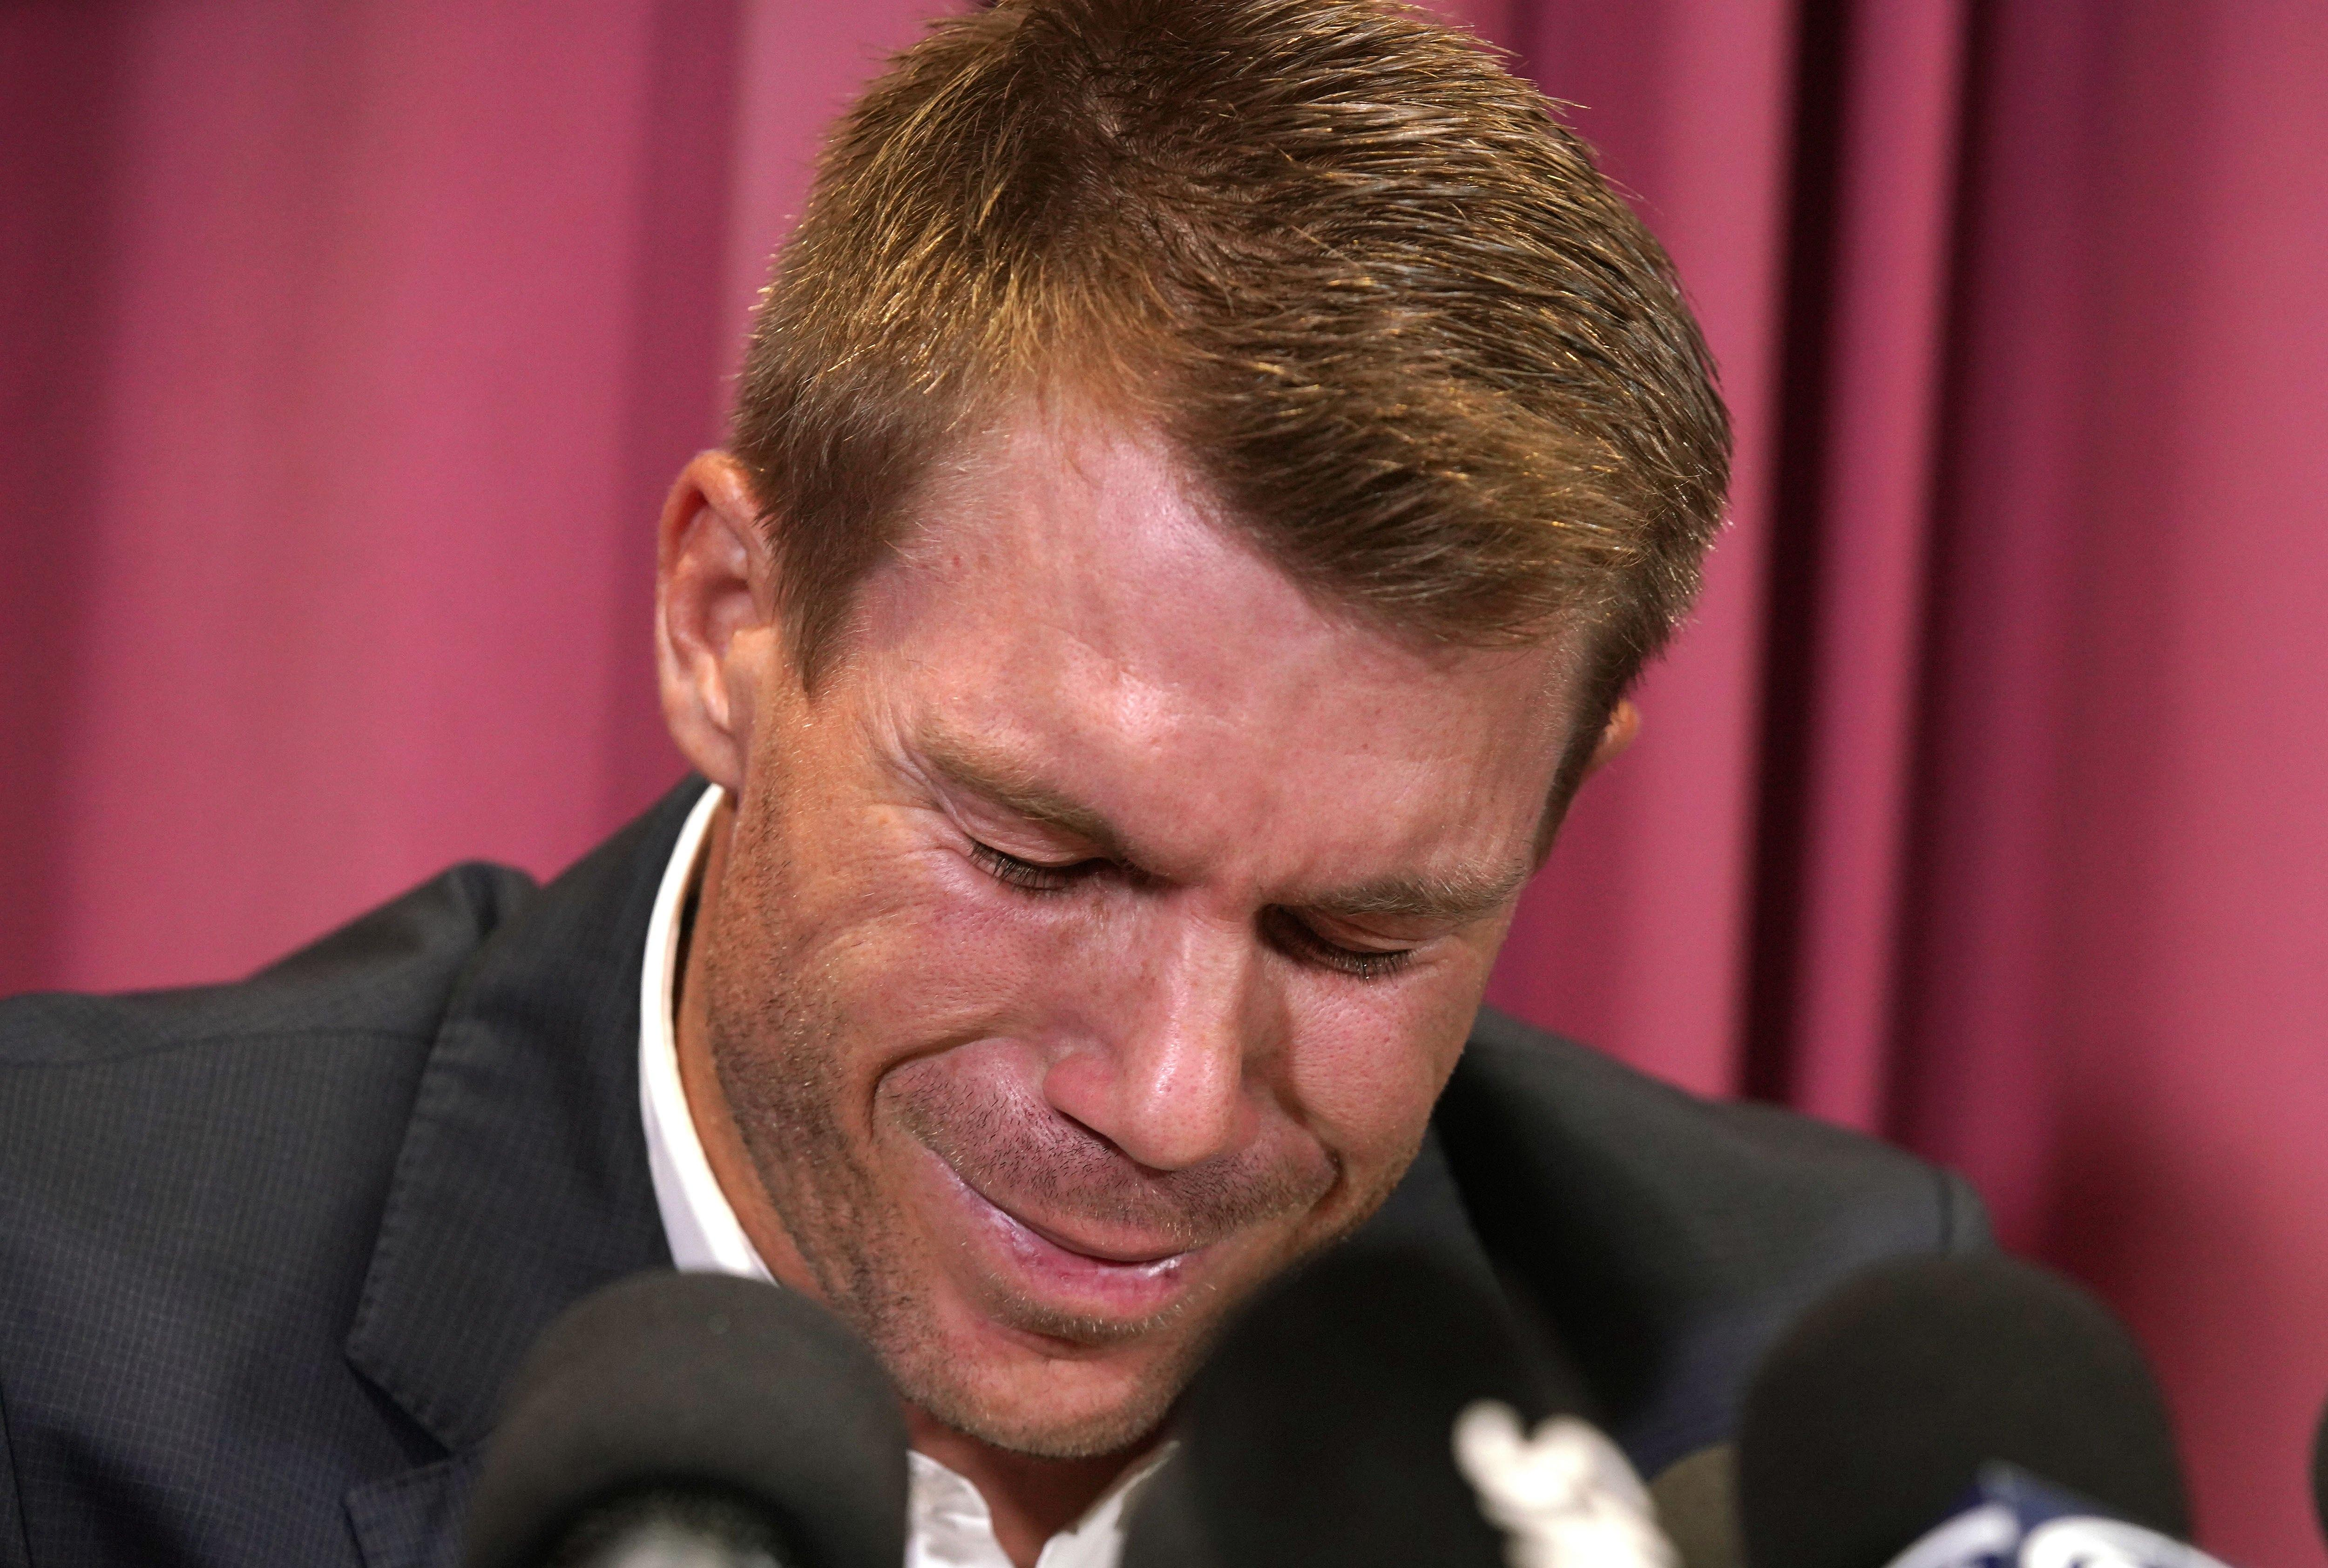 The disgraced former Australia vice-captain broke down in his press conference